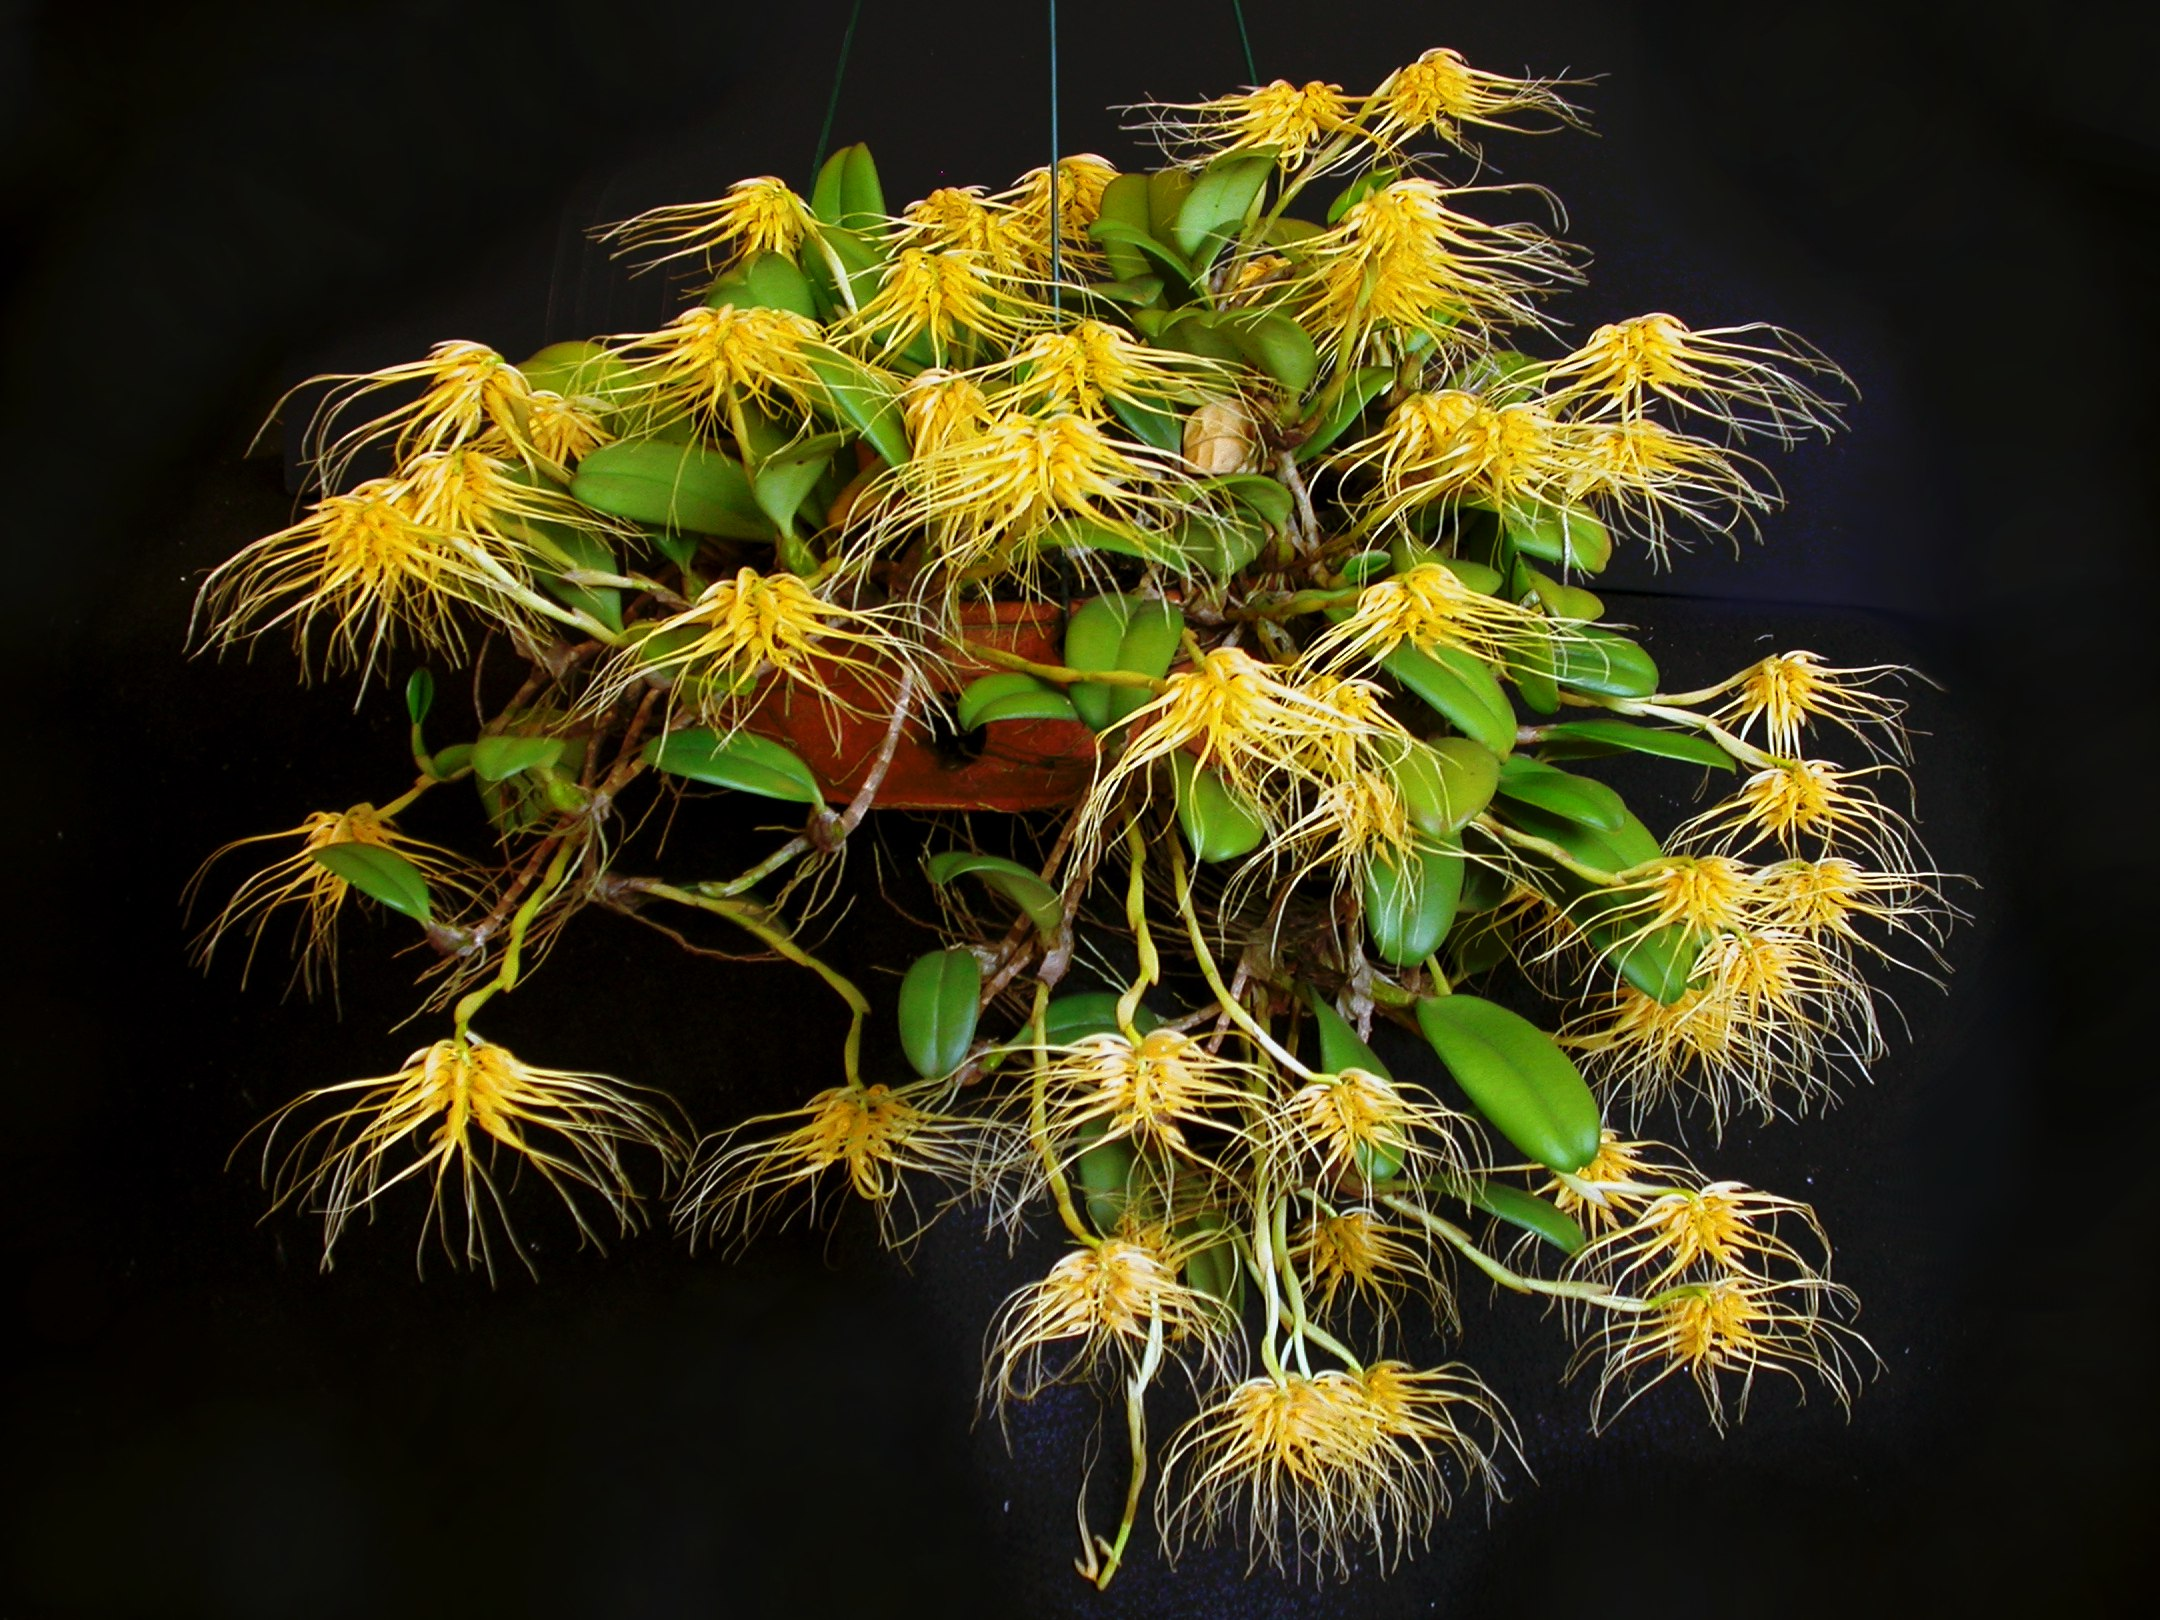 http://upload.wikimedia.org/wikipedia/commons/6/65/Bulbophyllum_vaginatum_1.jpg